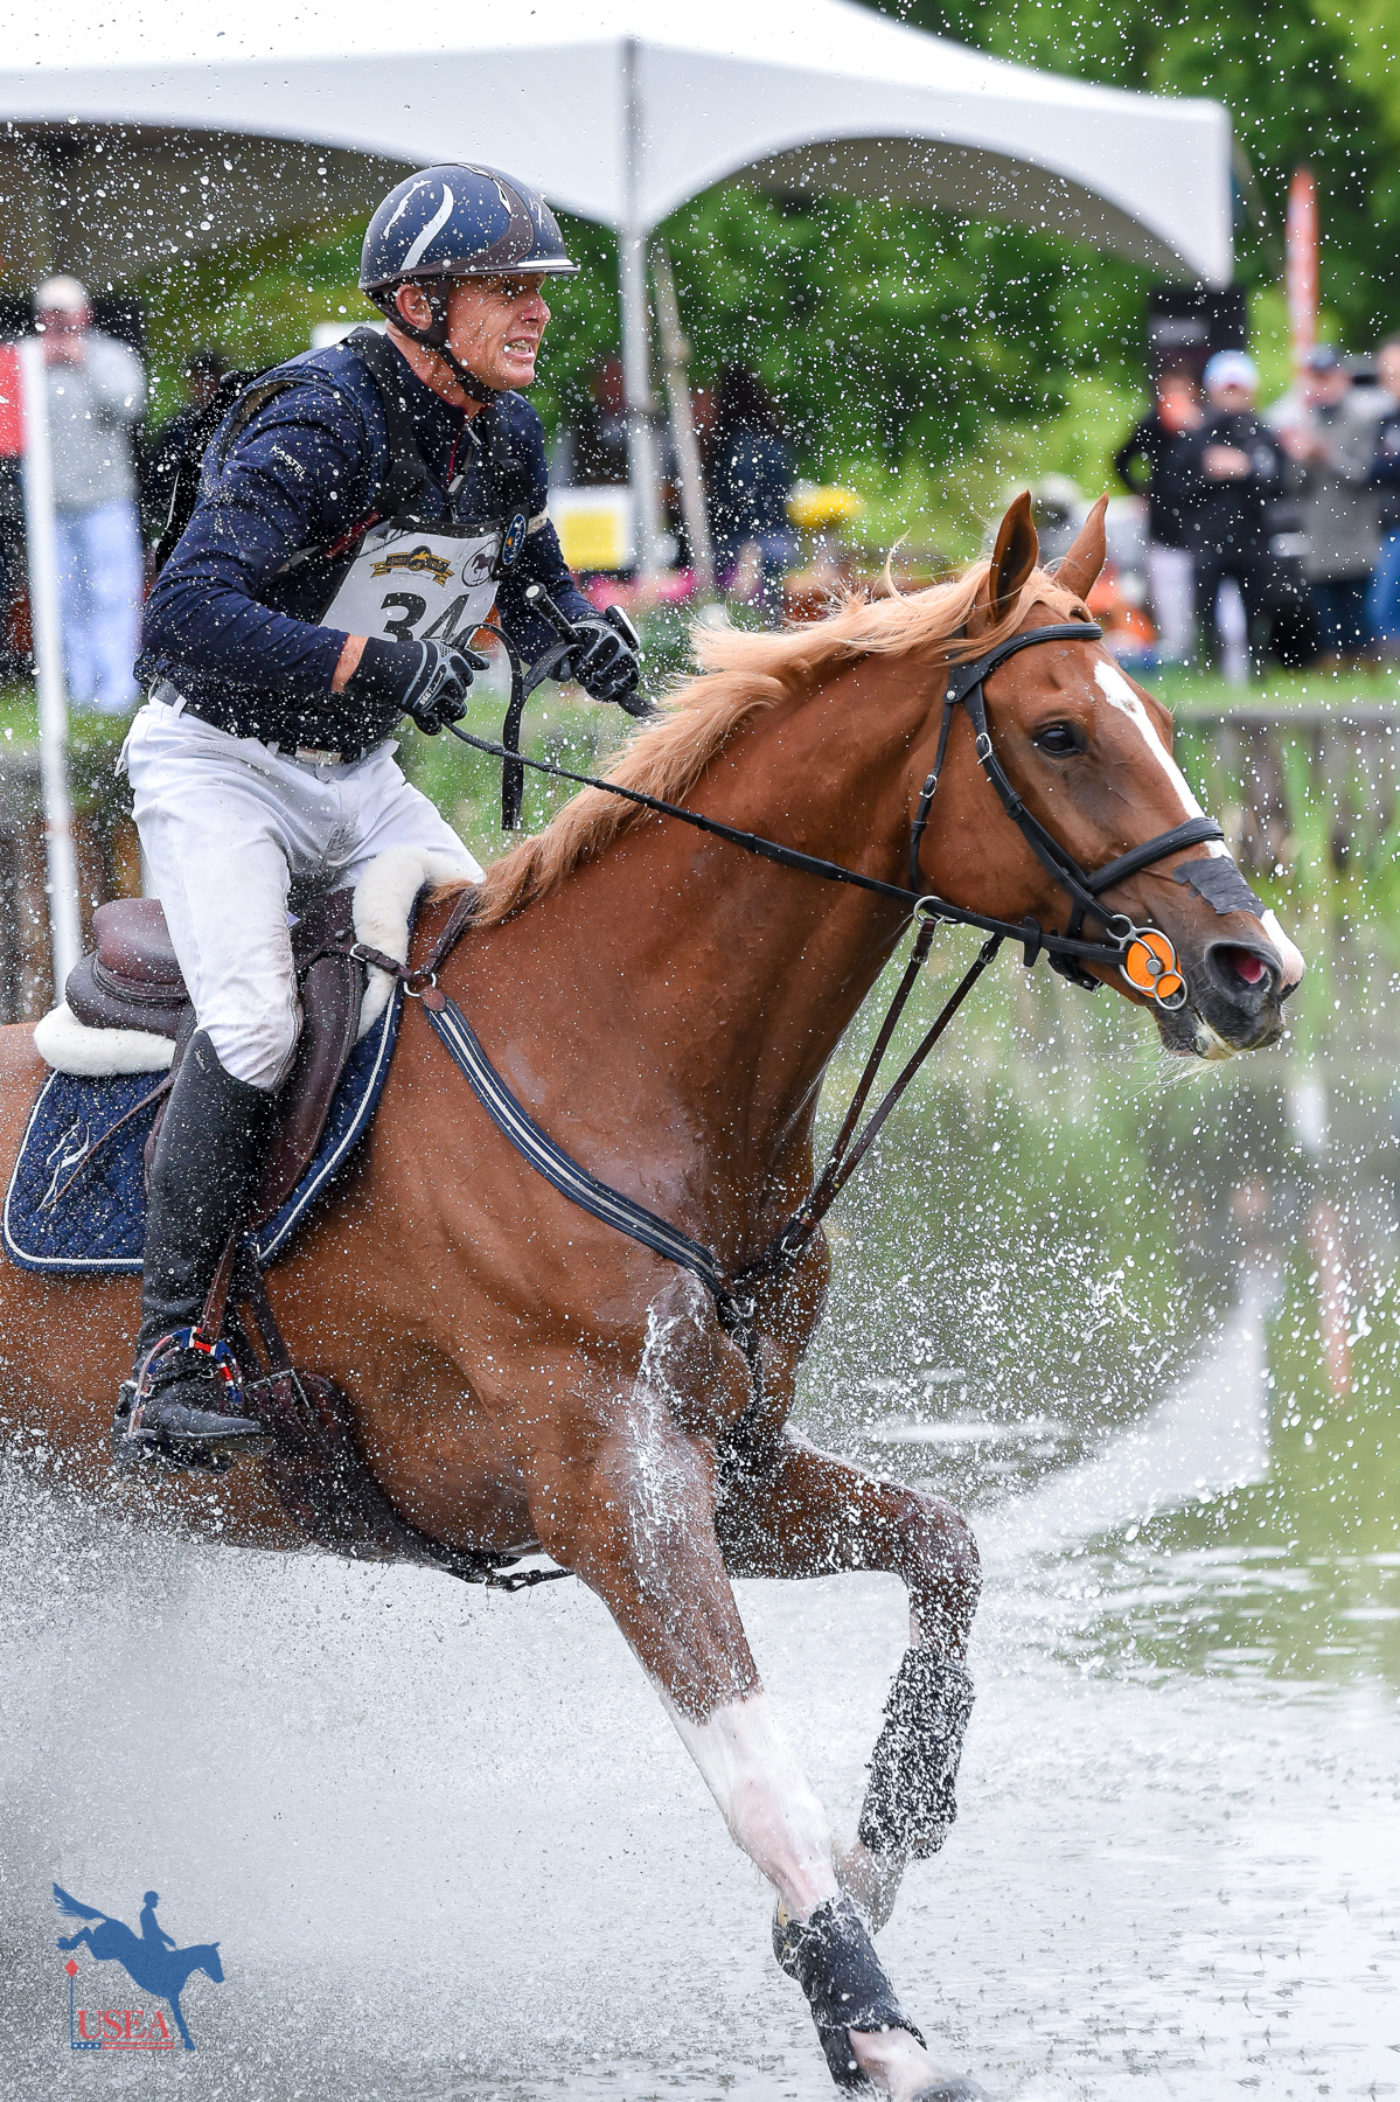 Leslie Law and Voltaire de Tre making a splash. USEA/Jessica Duffy Photo.